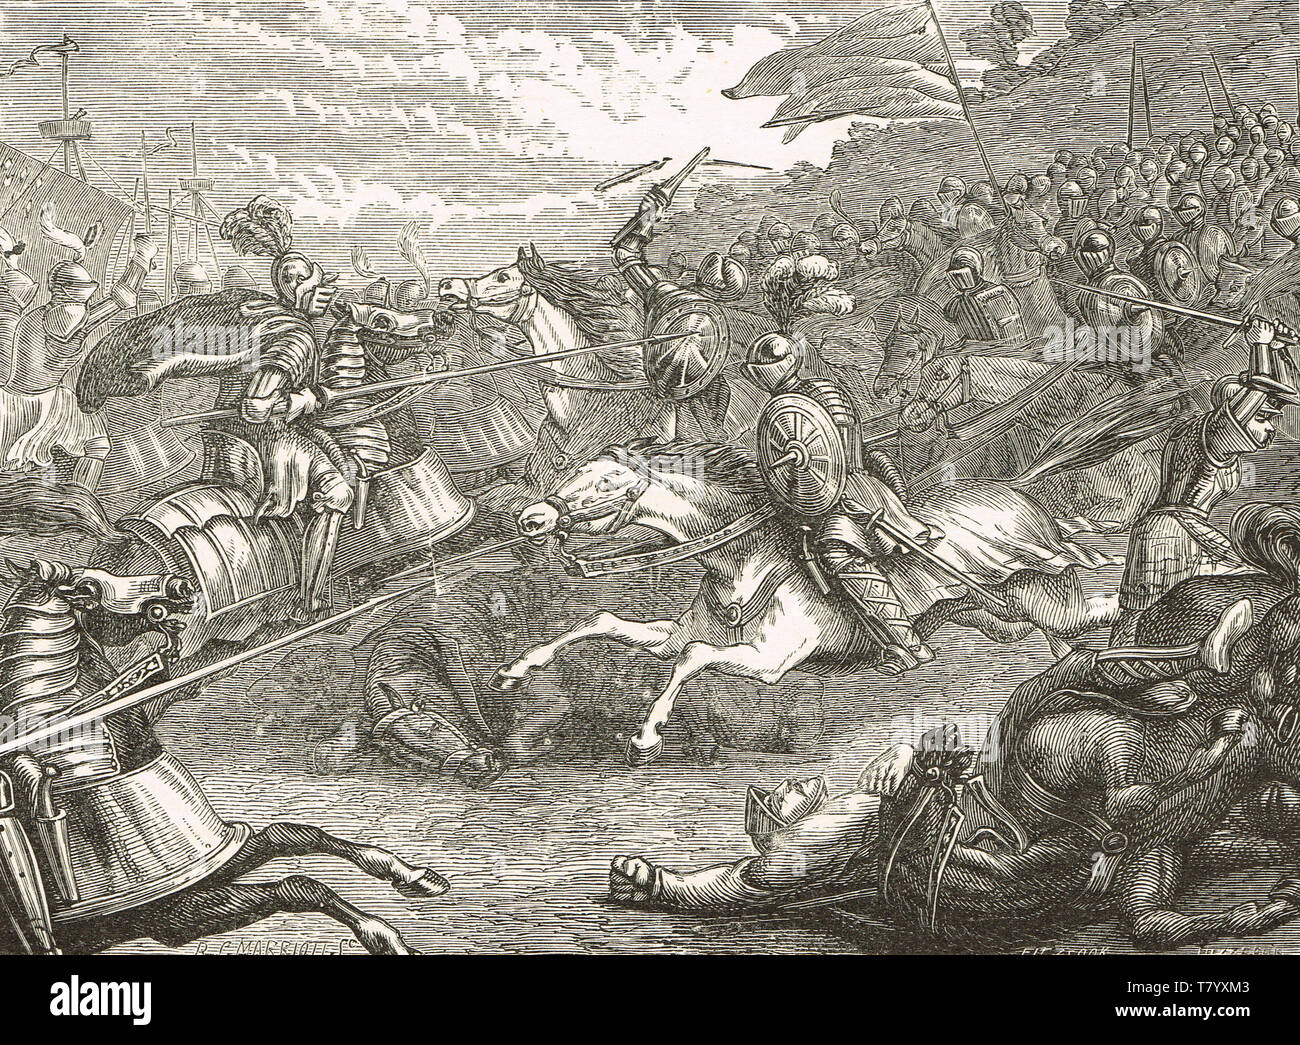 Lord Grey of Wilton leading the cavalry charge at the Battle of Pinkie Cleugh,10 September 1547 - Stock Image